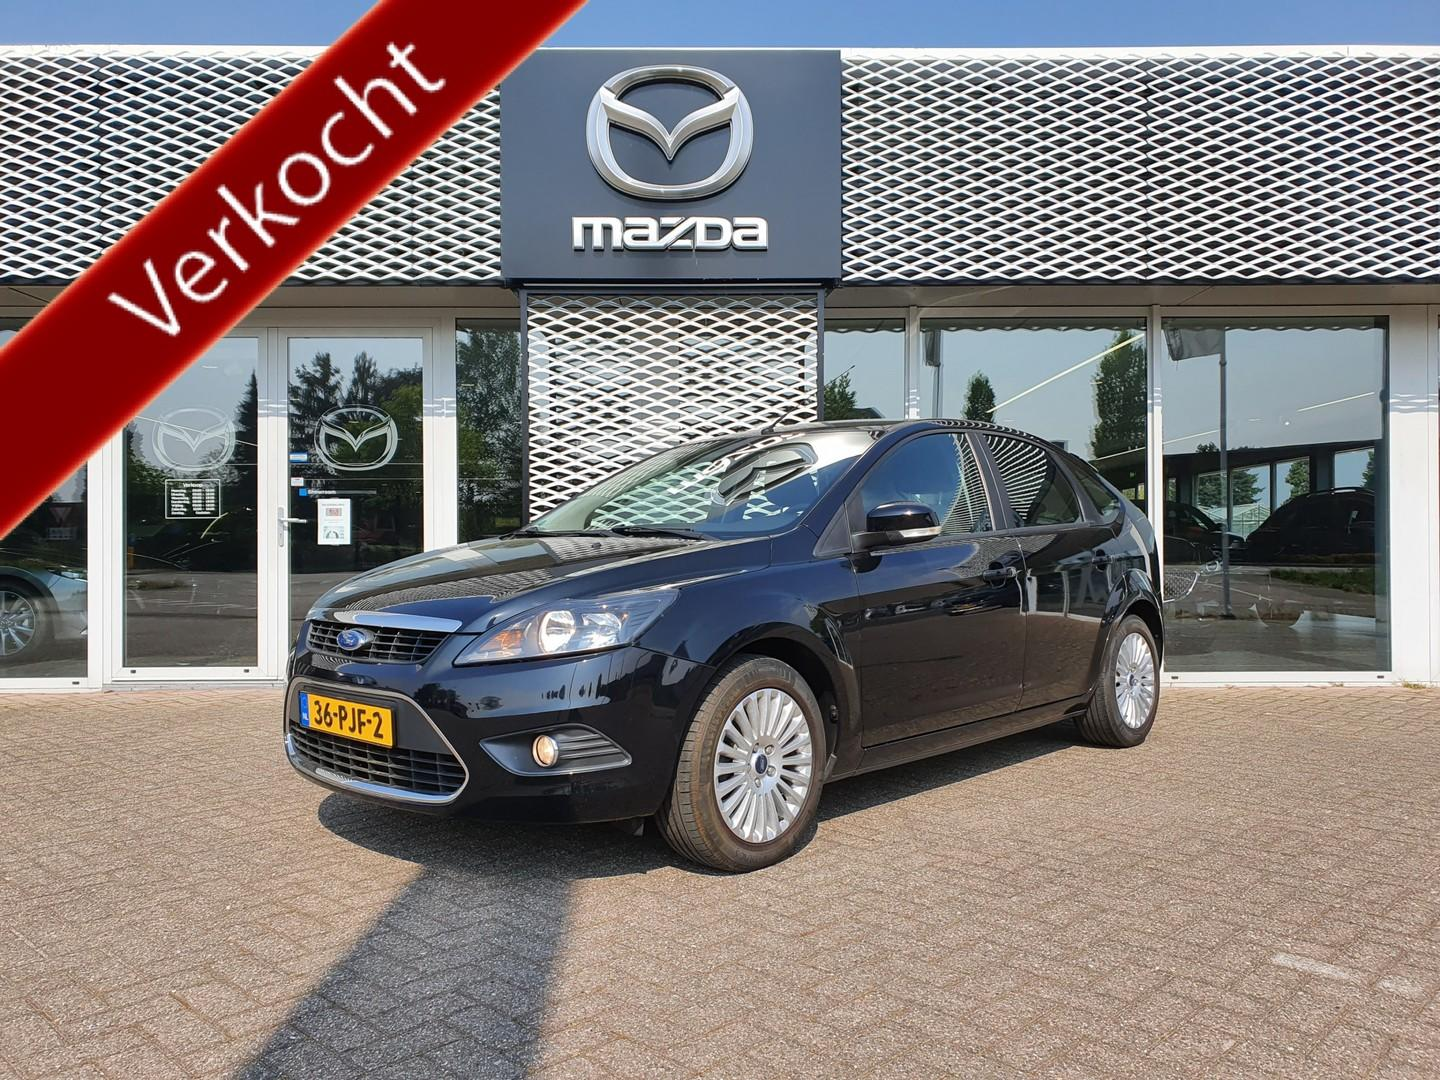 Ford Focus Hb5 1.8 limited *****verkocht*****